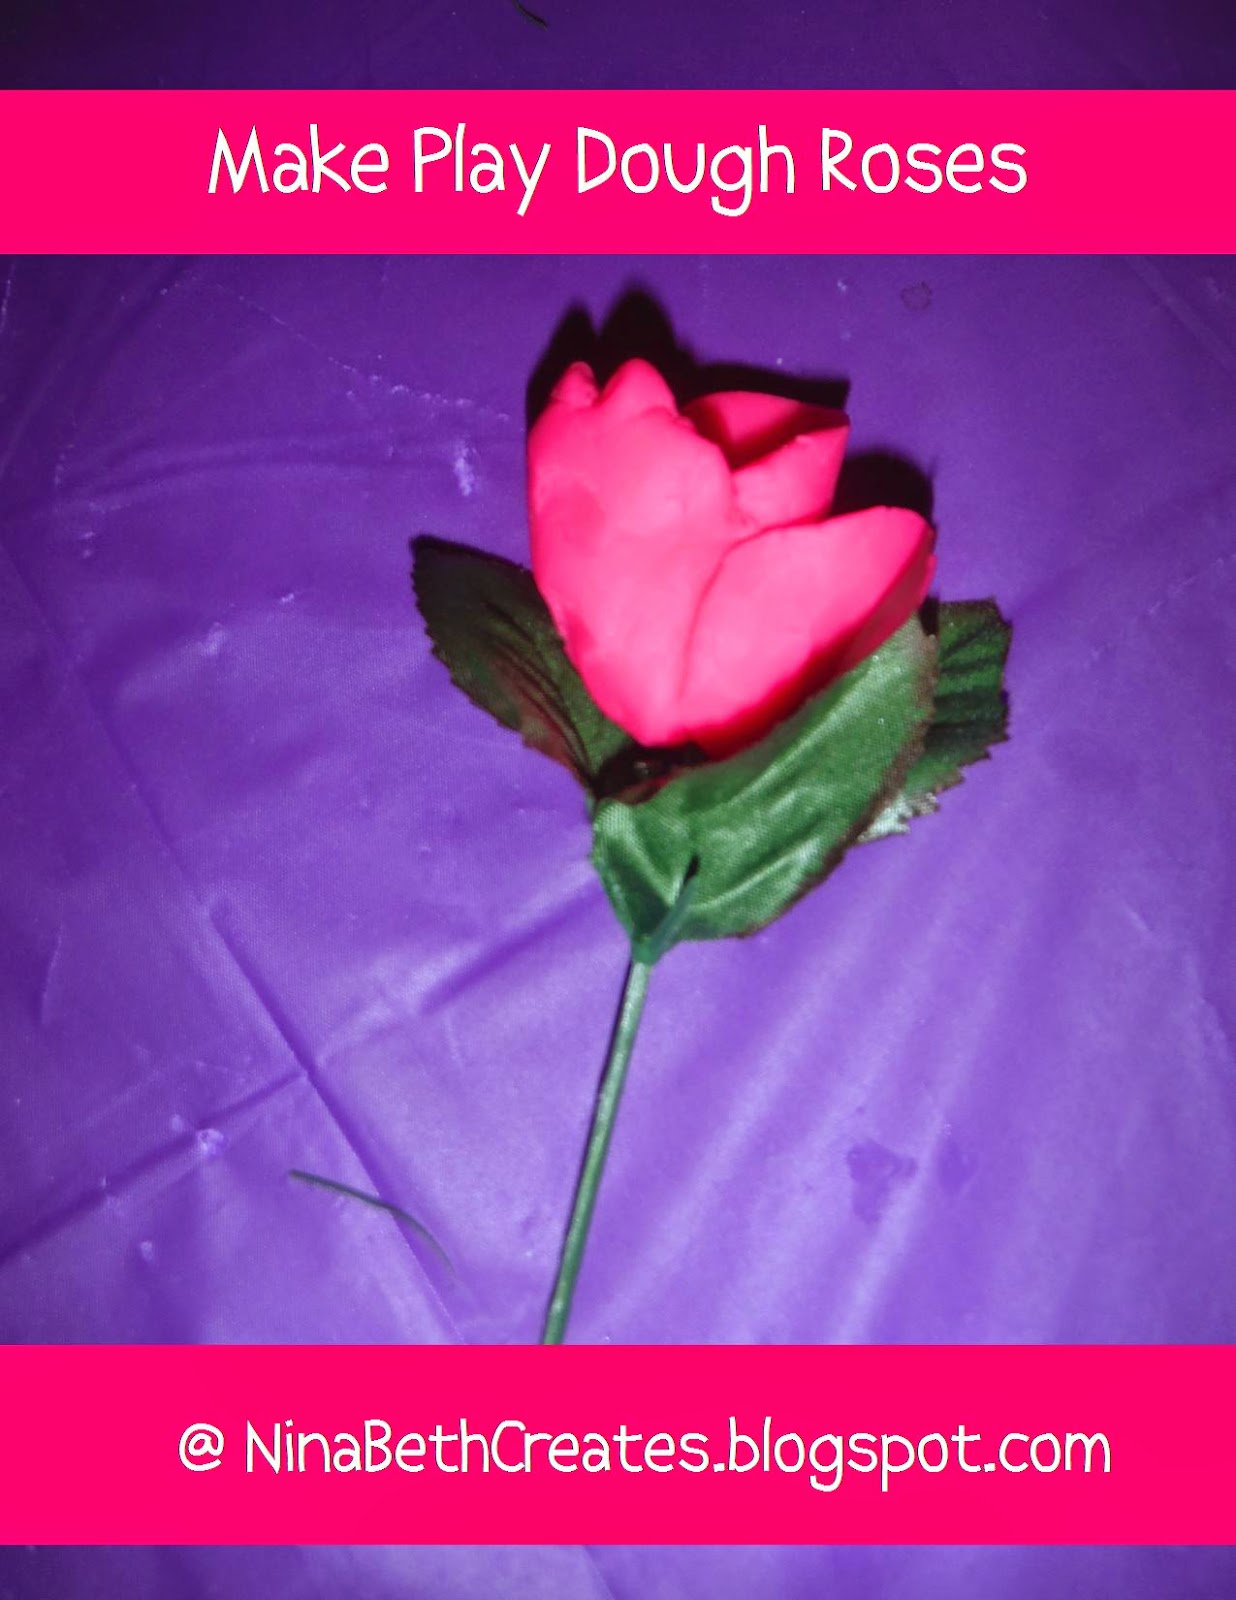 http://ninabethcreates.blogspot.com/2014/12/make-play-dough-roses-with-seven-simple.html